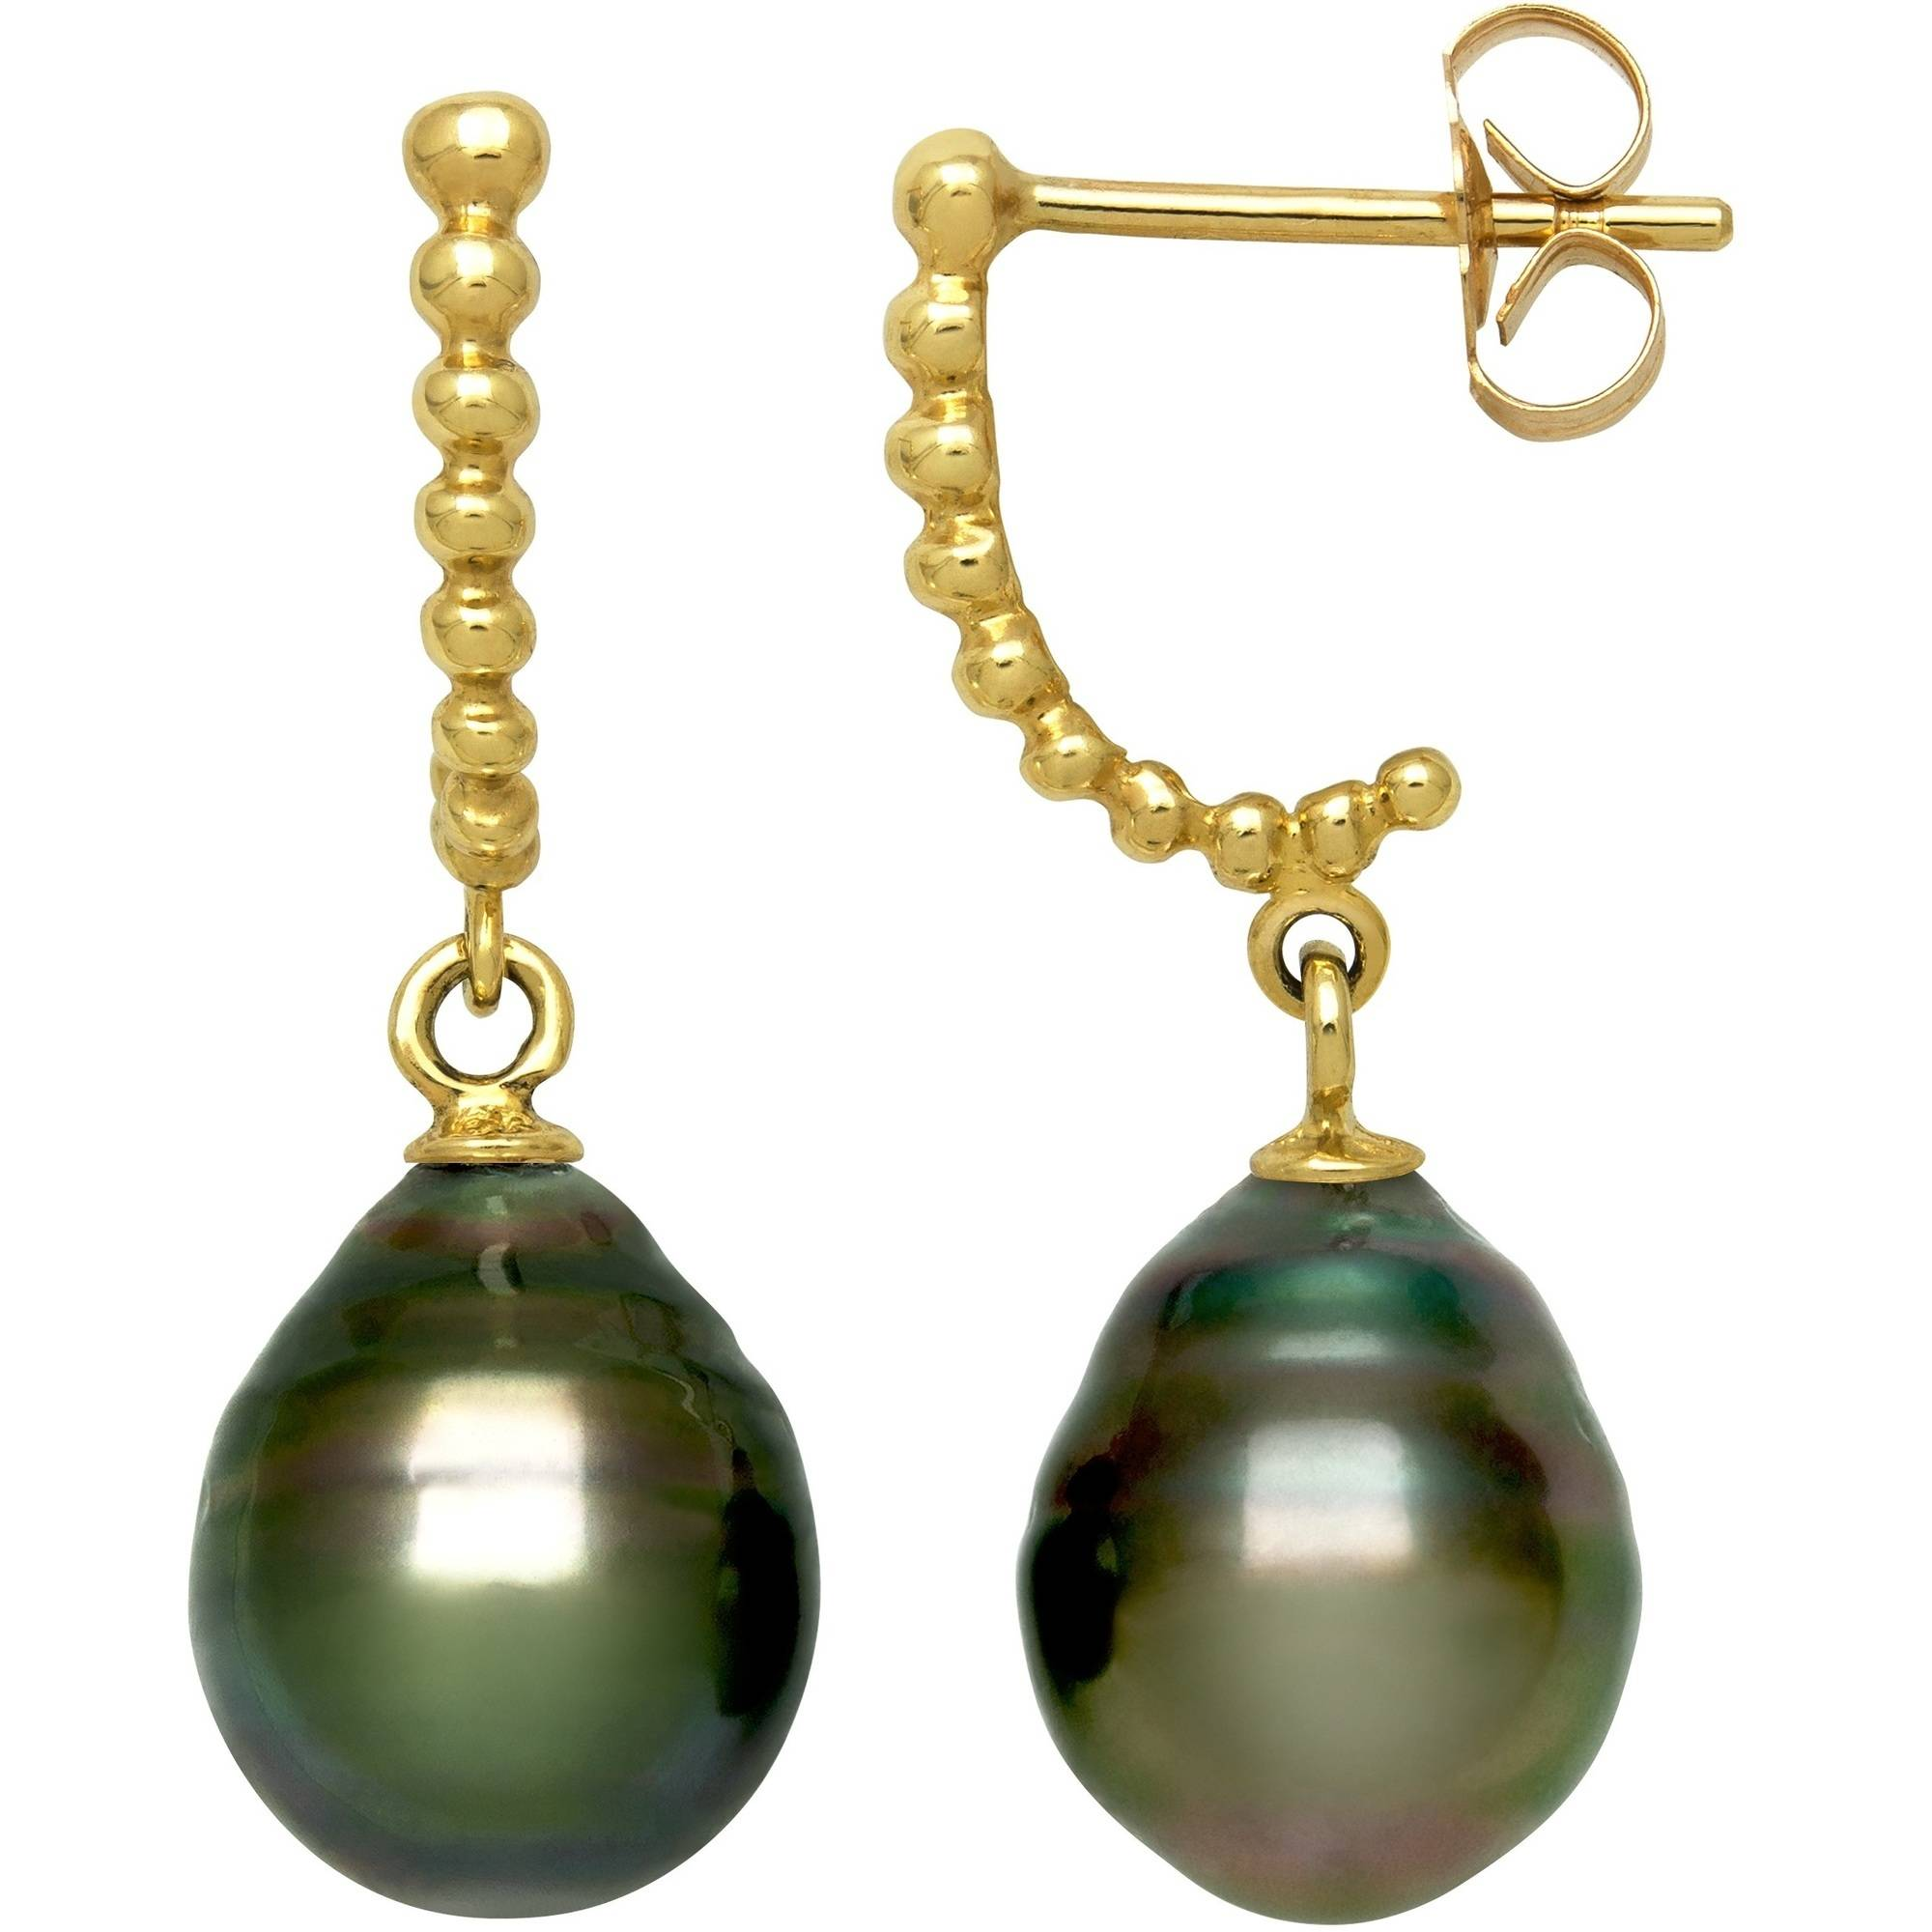 8-9mm Drop Tahitian Black Pearl 14kt Yellow Gold Beaded Drop Earrings by China Pearl